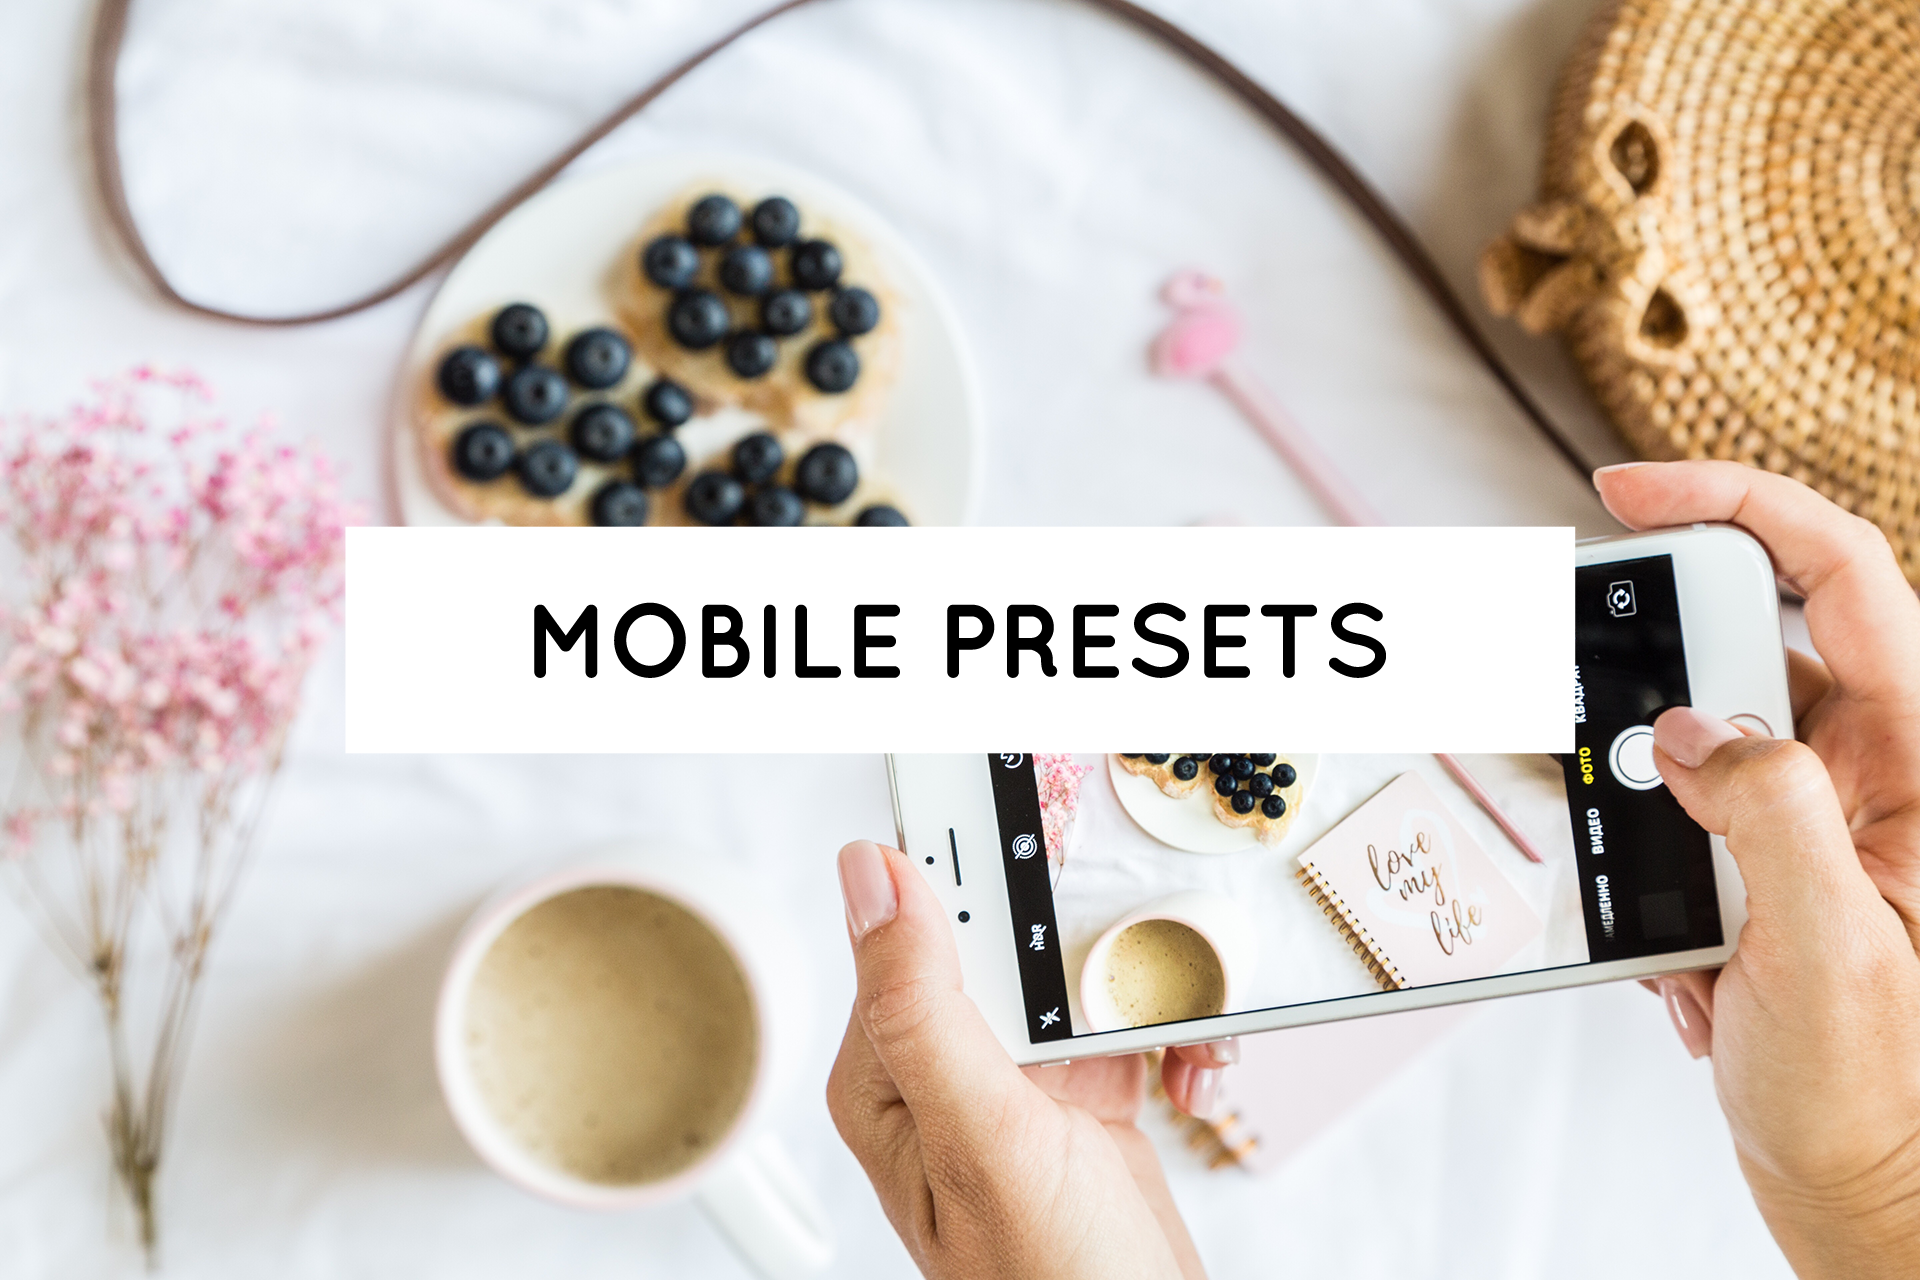 Mobile Presets by Pixgrade